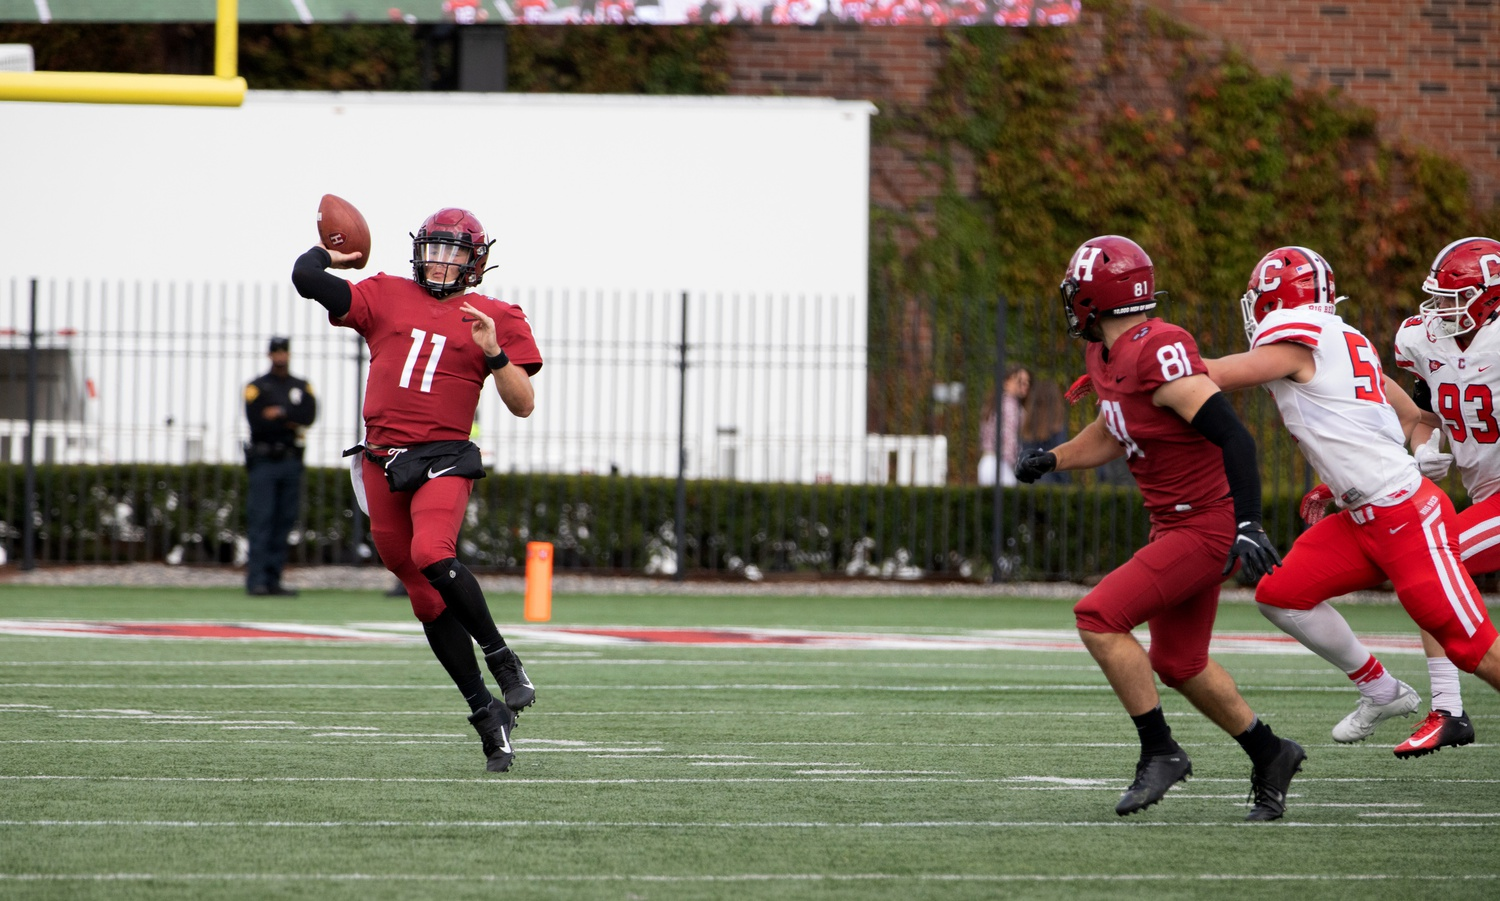 Sophomore quarterback Charlie Dean unleashes a deep throw in the Crimson's 24-10 victory over Cornell.